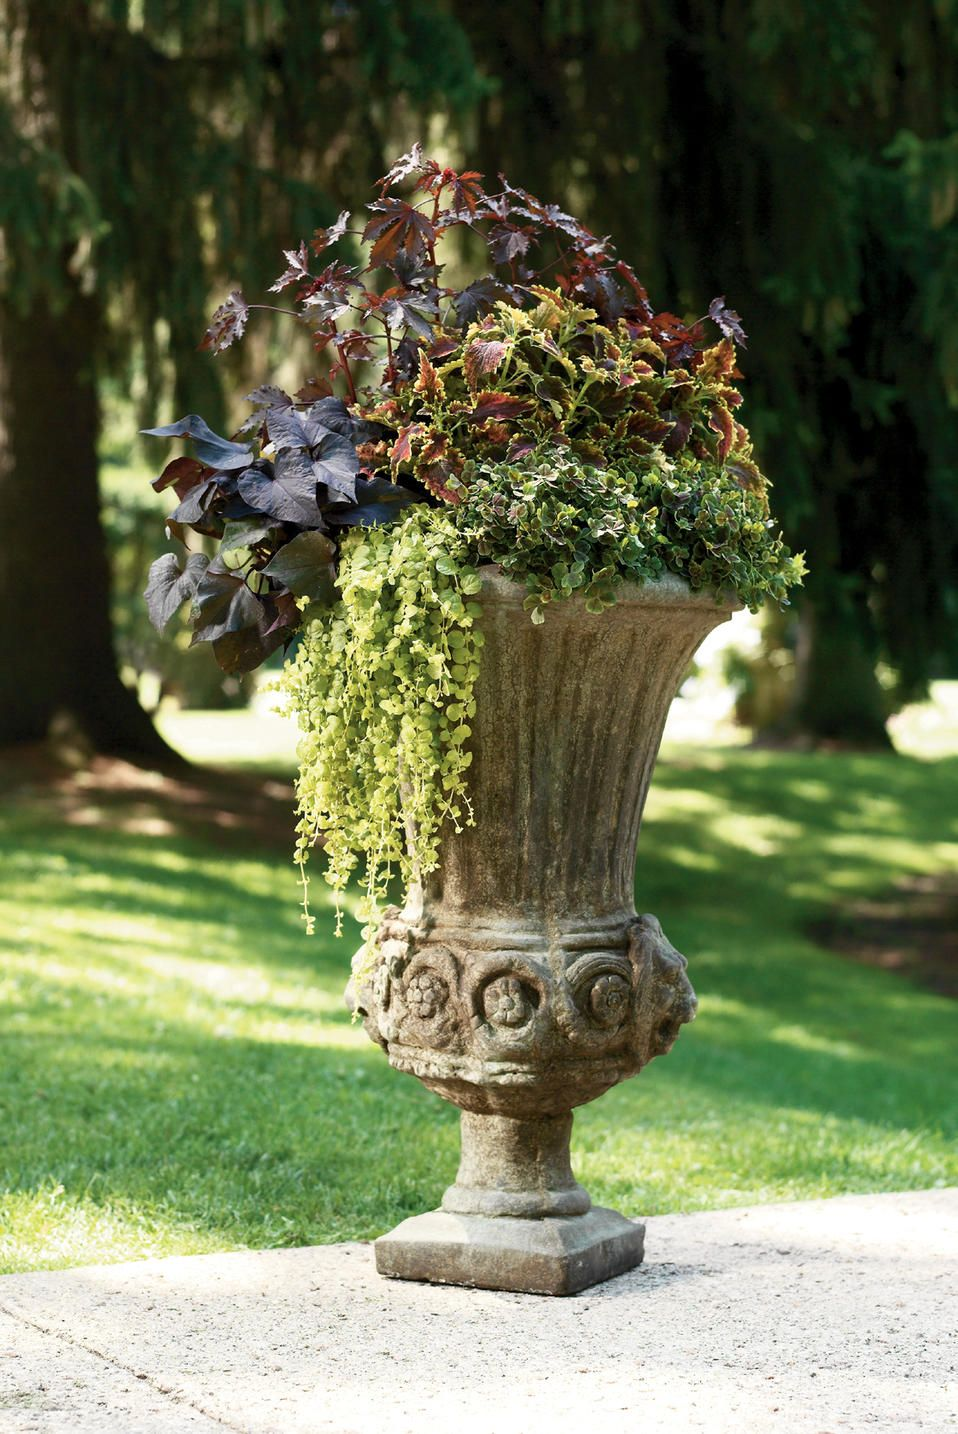 Foliage Fantasy in a garden urn by Proven Winners. 1 Maple Sugar hibiscus, 1 Black Heart sweet potato vine, 1 Goldilocks creeping jenny, 1 Dark Dancer White Clover, 1 Sky Fire Coleus